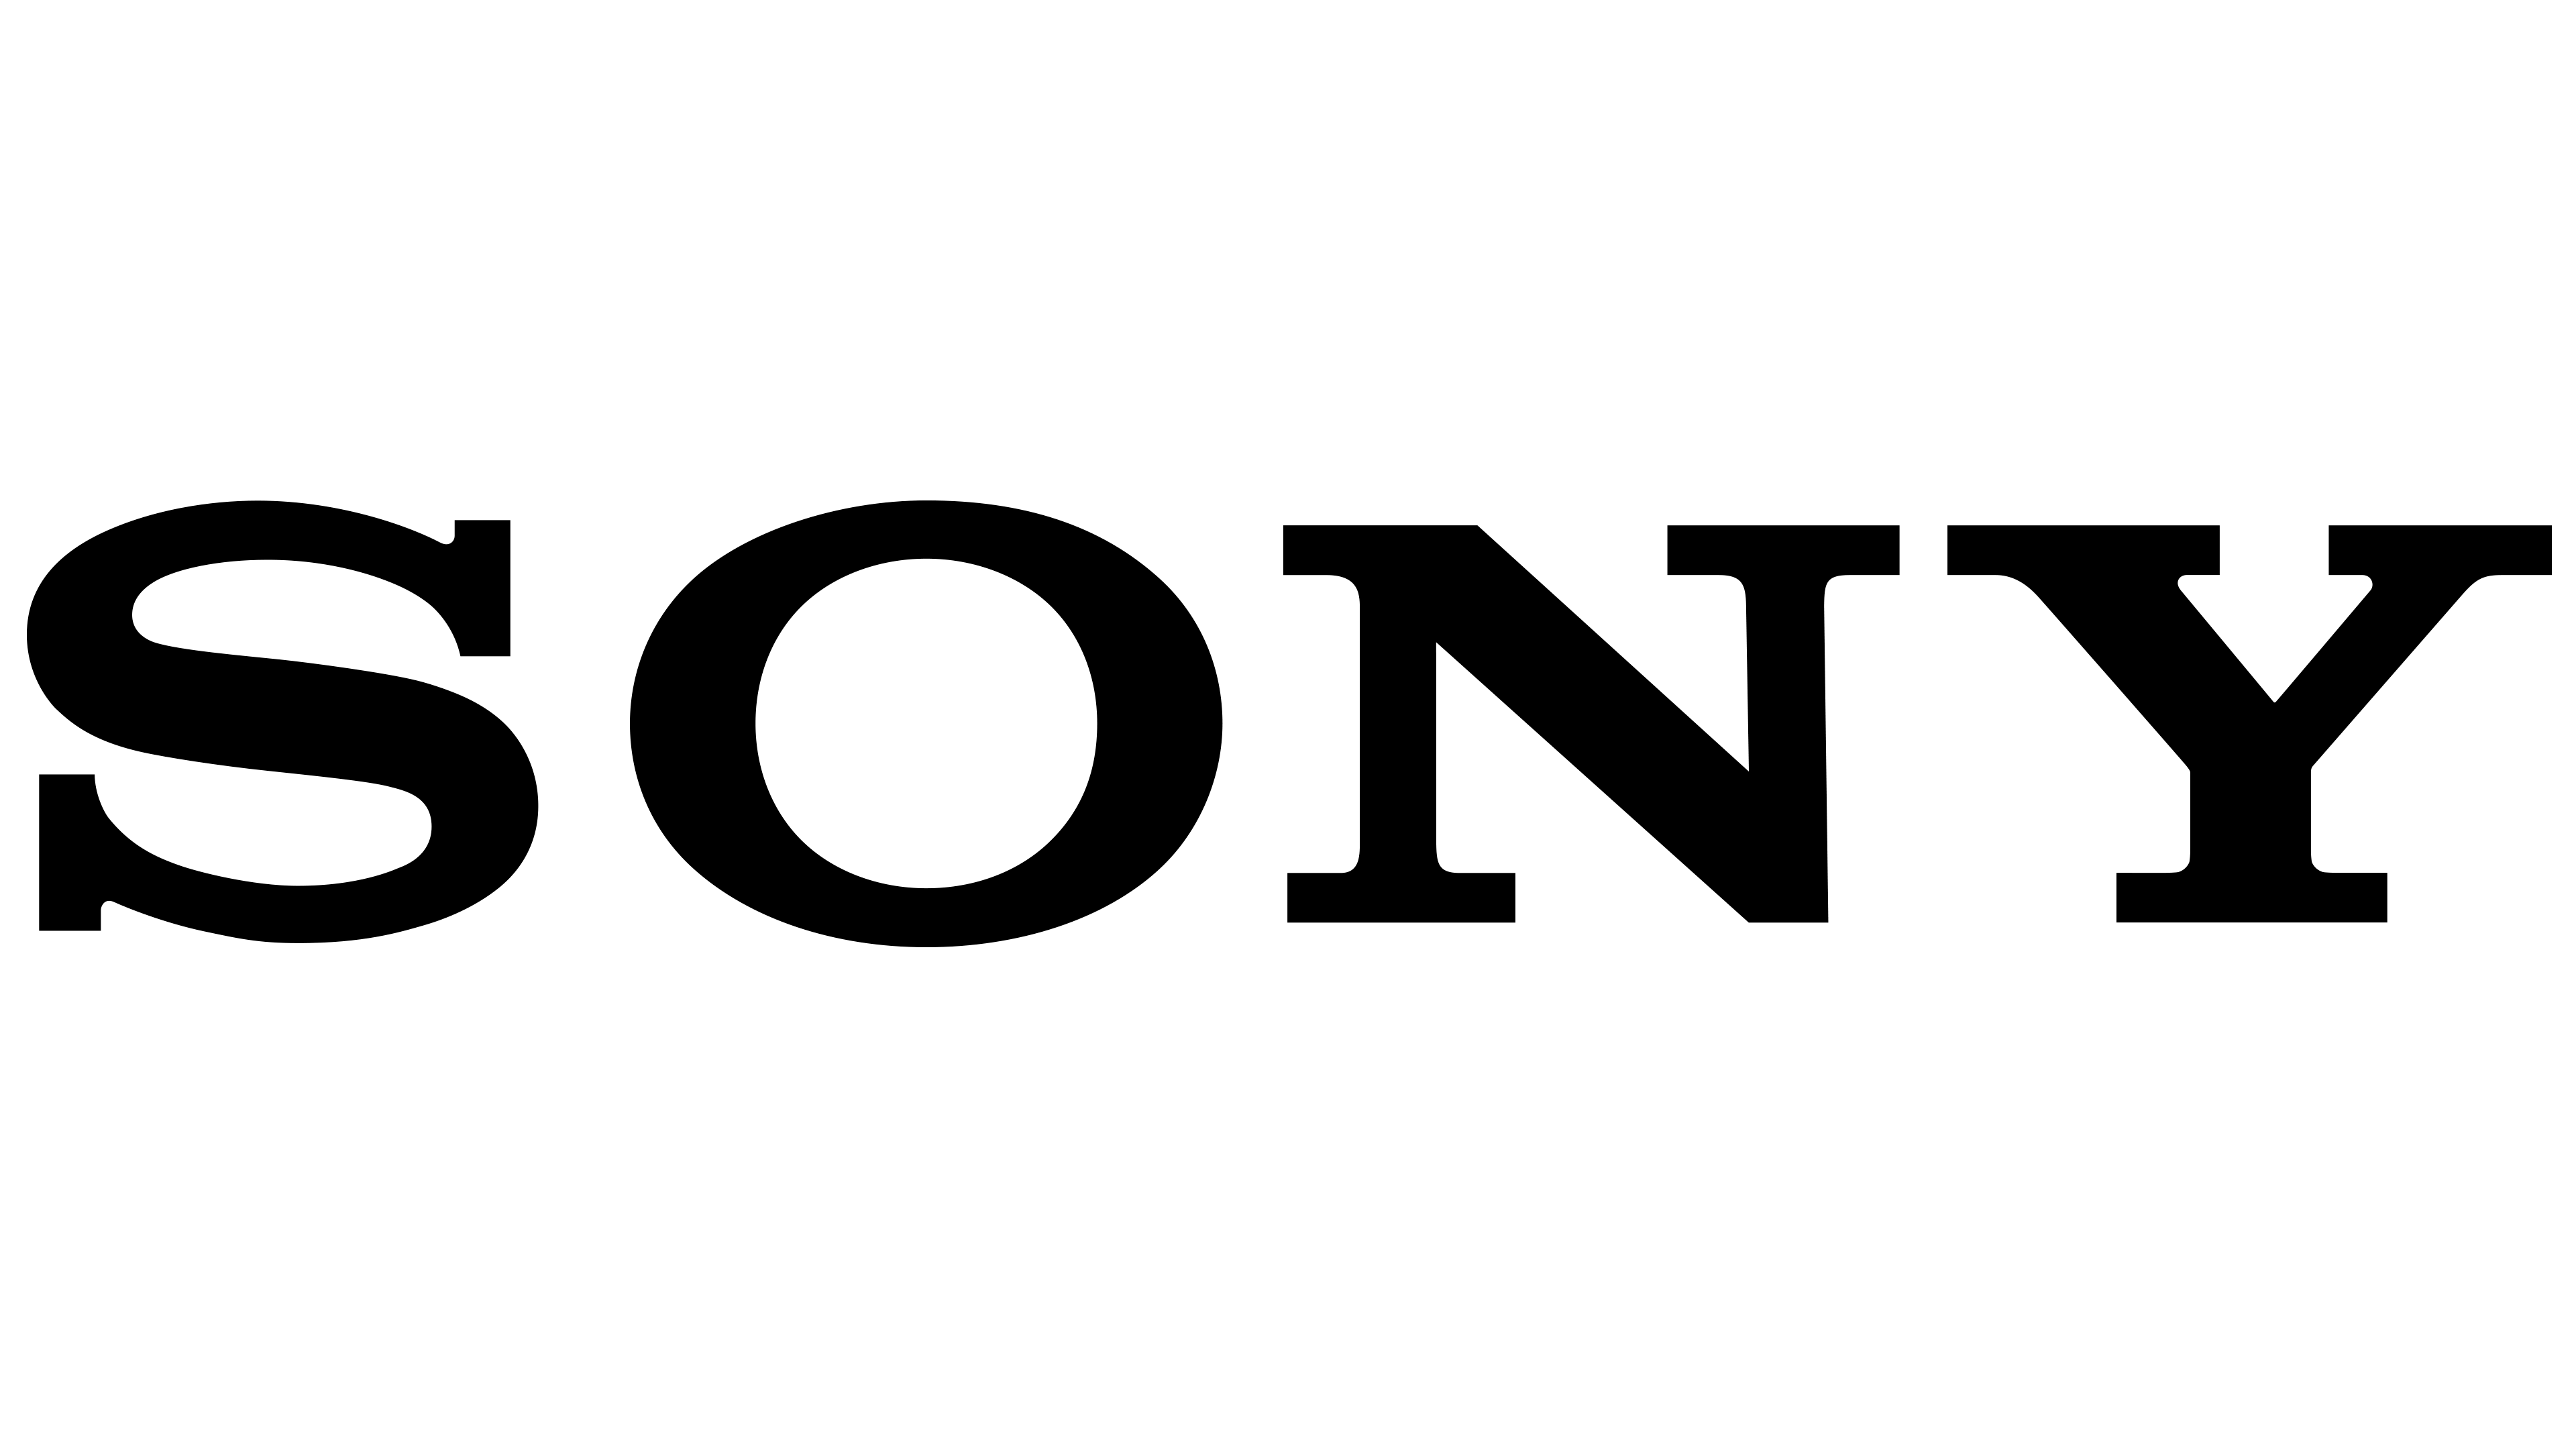 sony-logo2.png